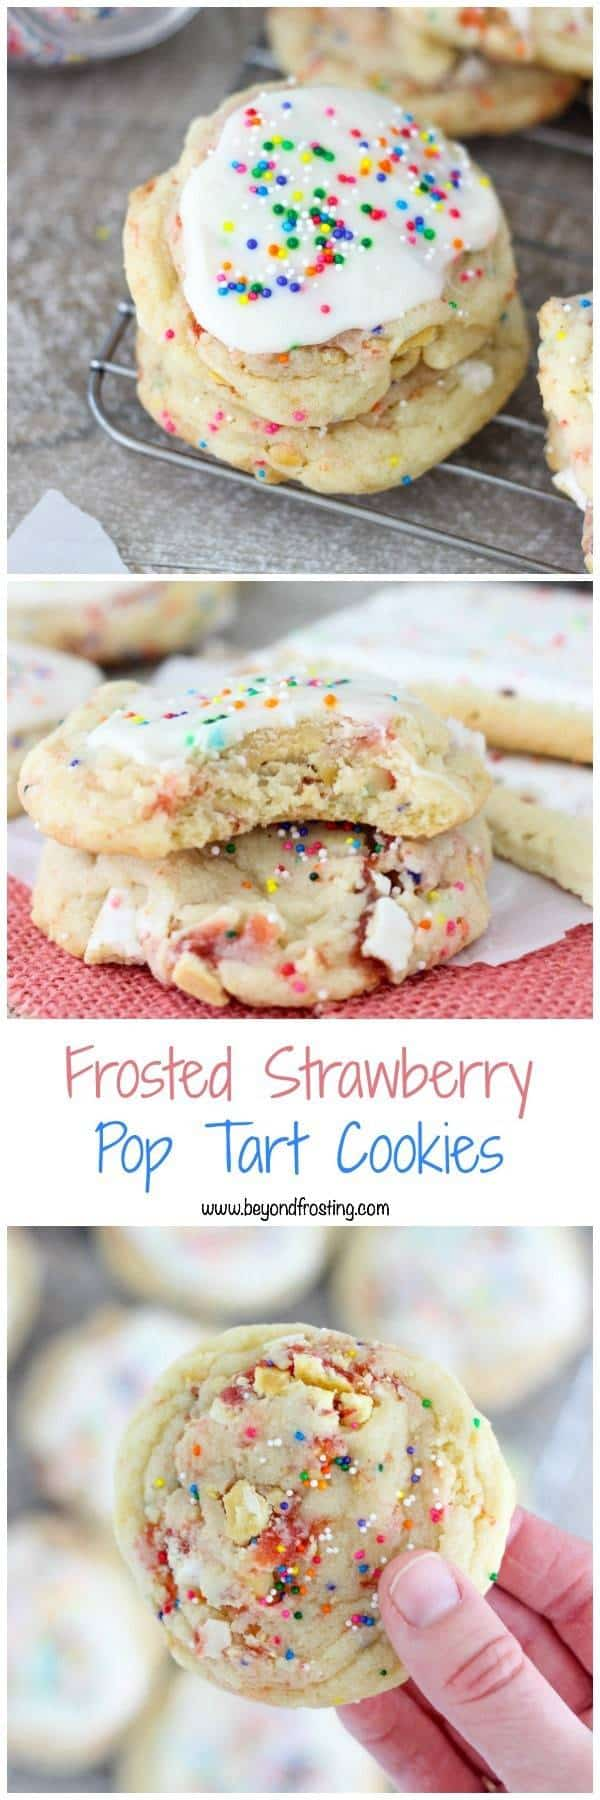 These Frosted Strawberry Pop Tart Cookies are like a party in your mouth. The soft and buttery cookie is loaded with strawberry Pop Tarts and finished off with a vanilla glaze.